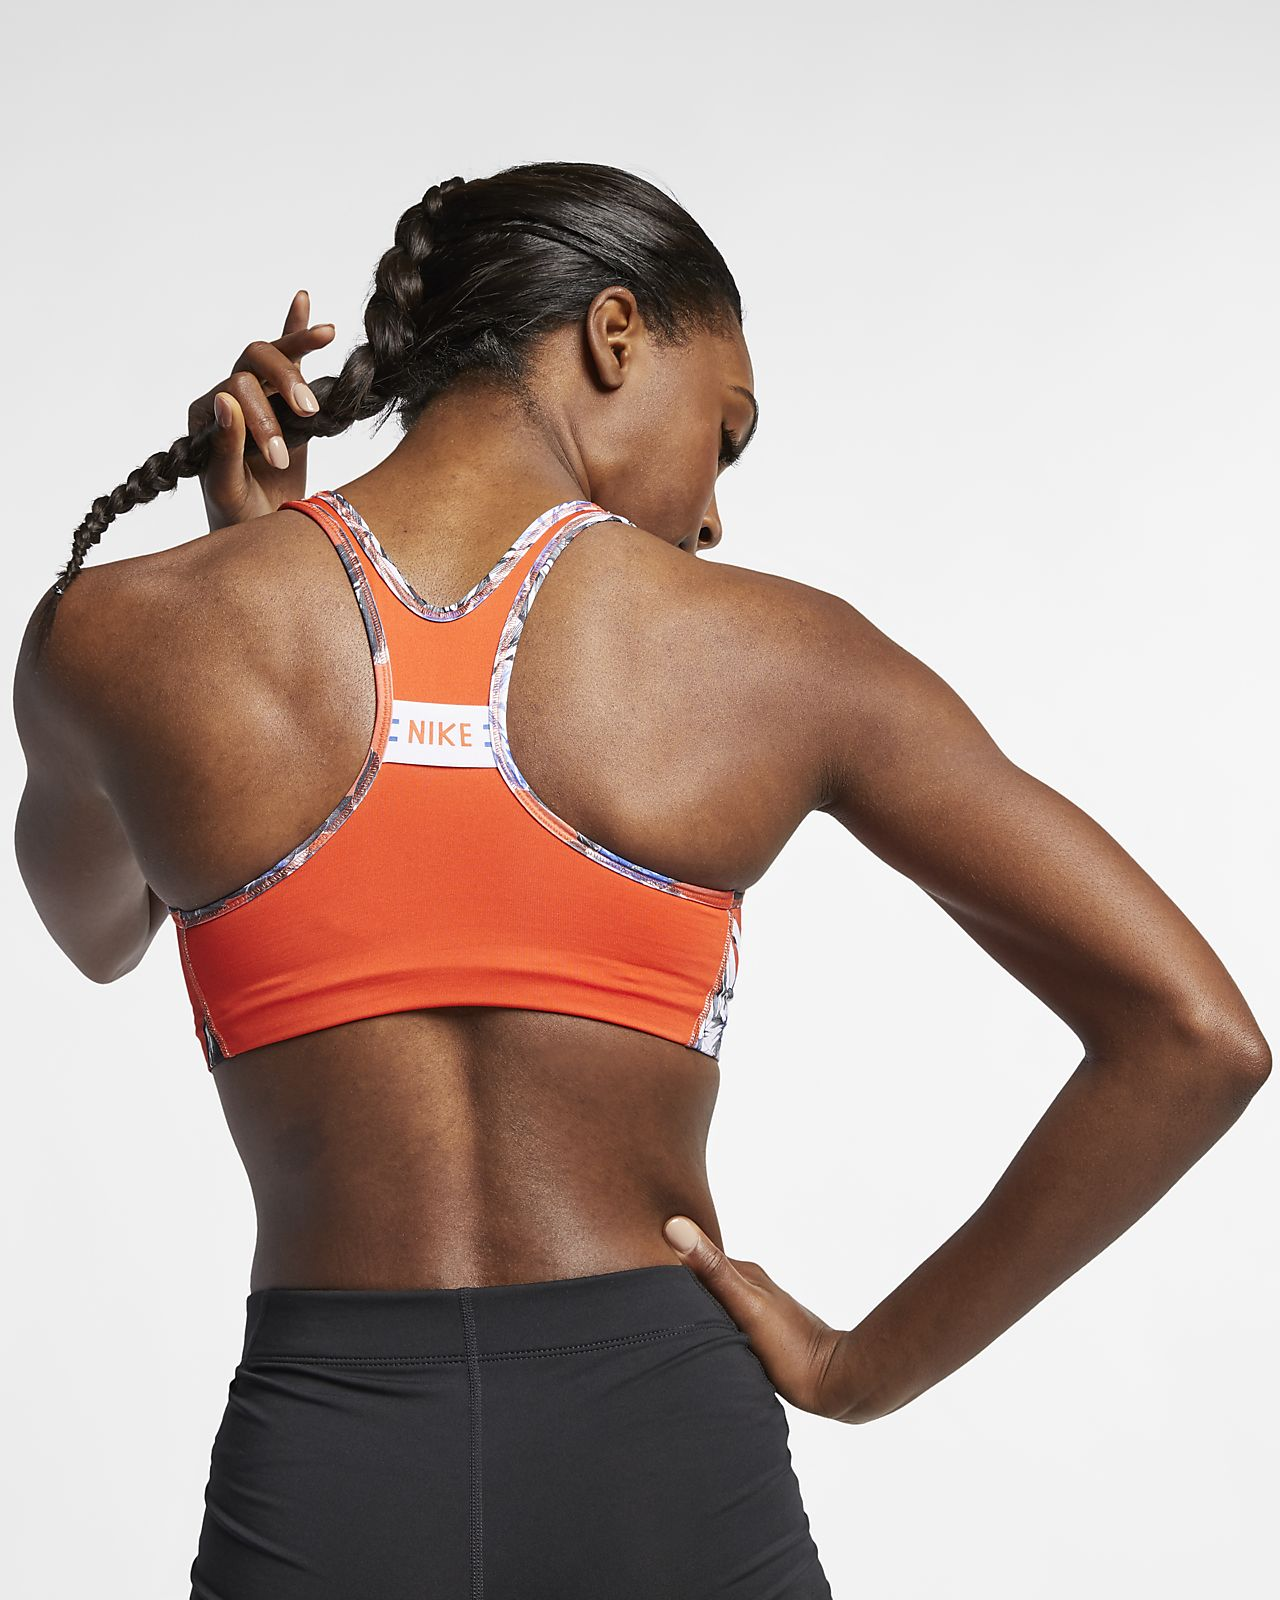 50503284edf Nike Swoosh Women s Medium Support Floral Sports Bra. Nike.com